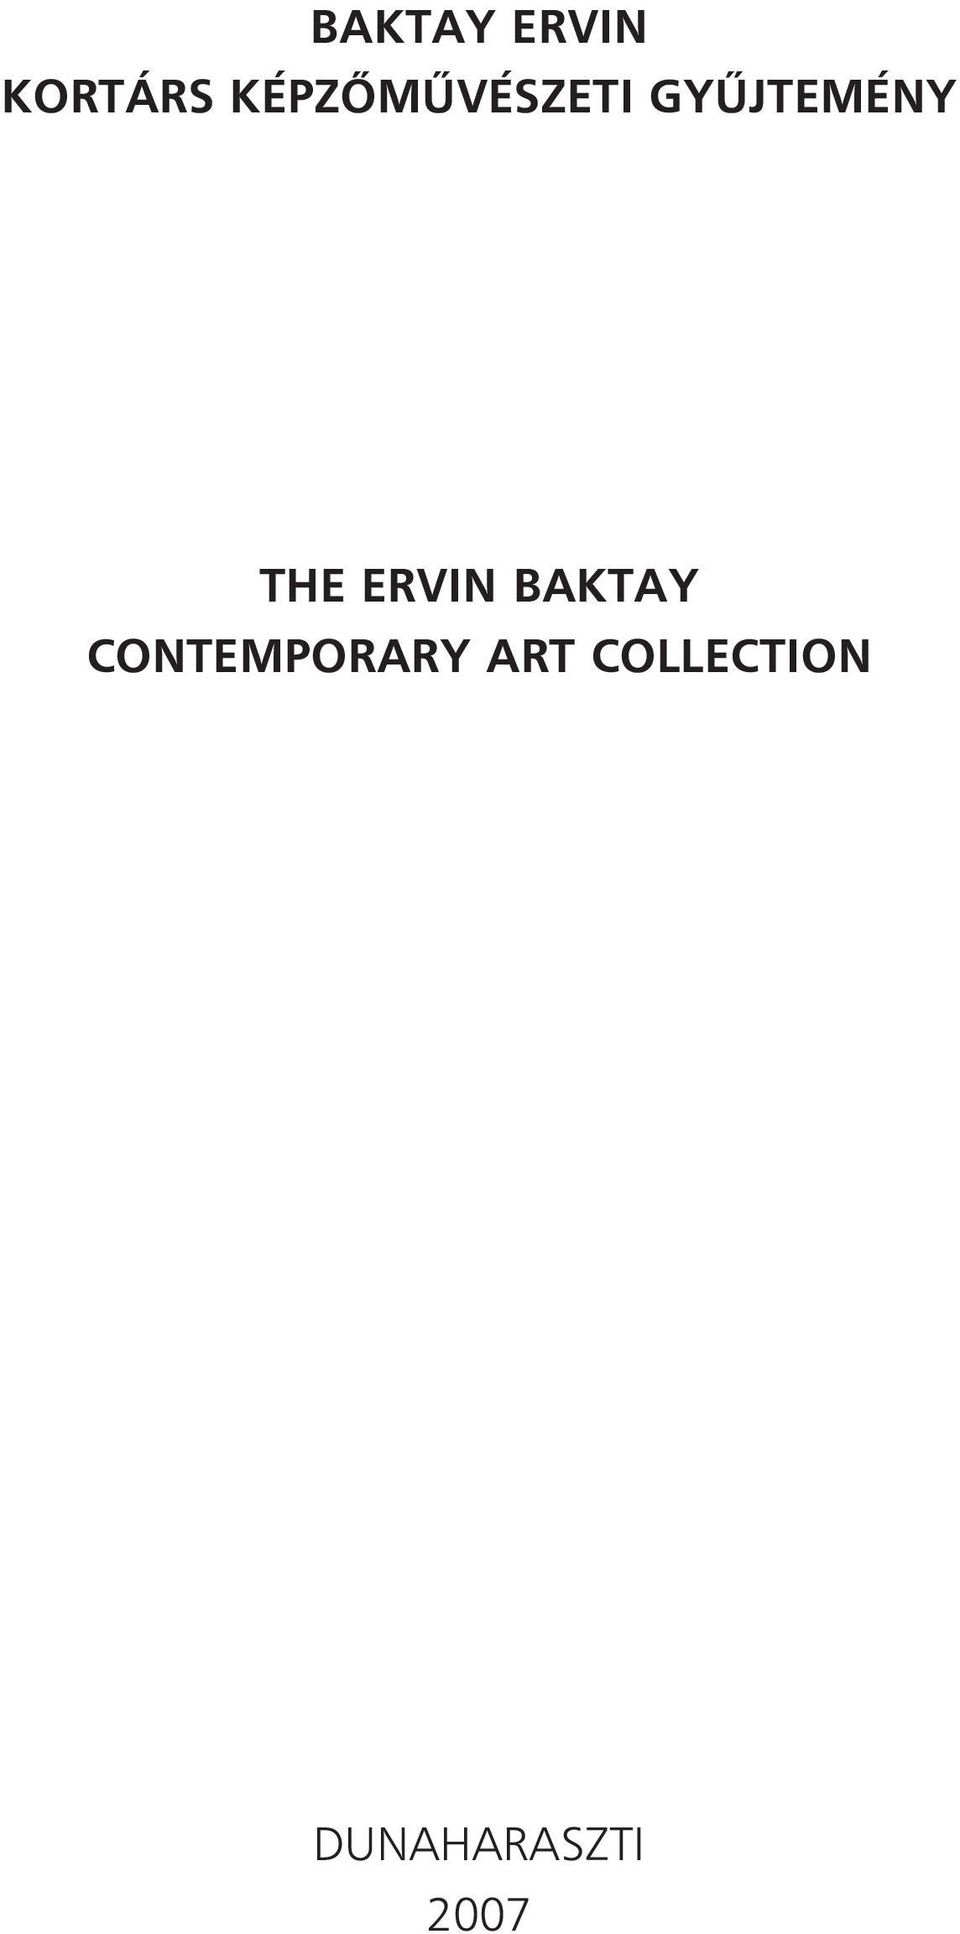 THE ERVIN BAKTAY